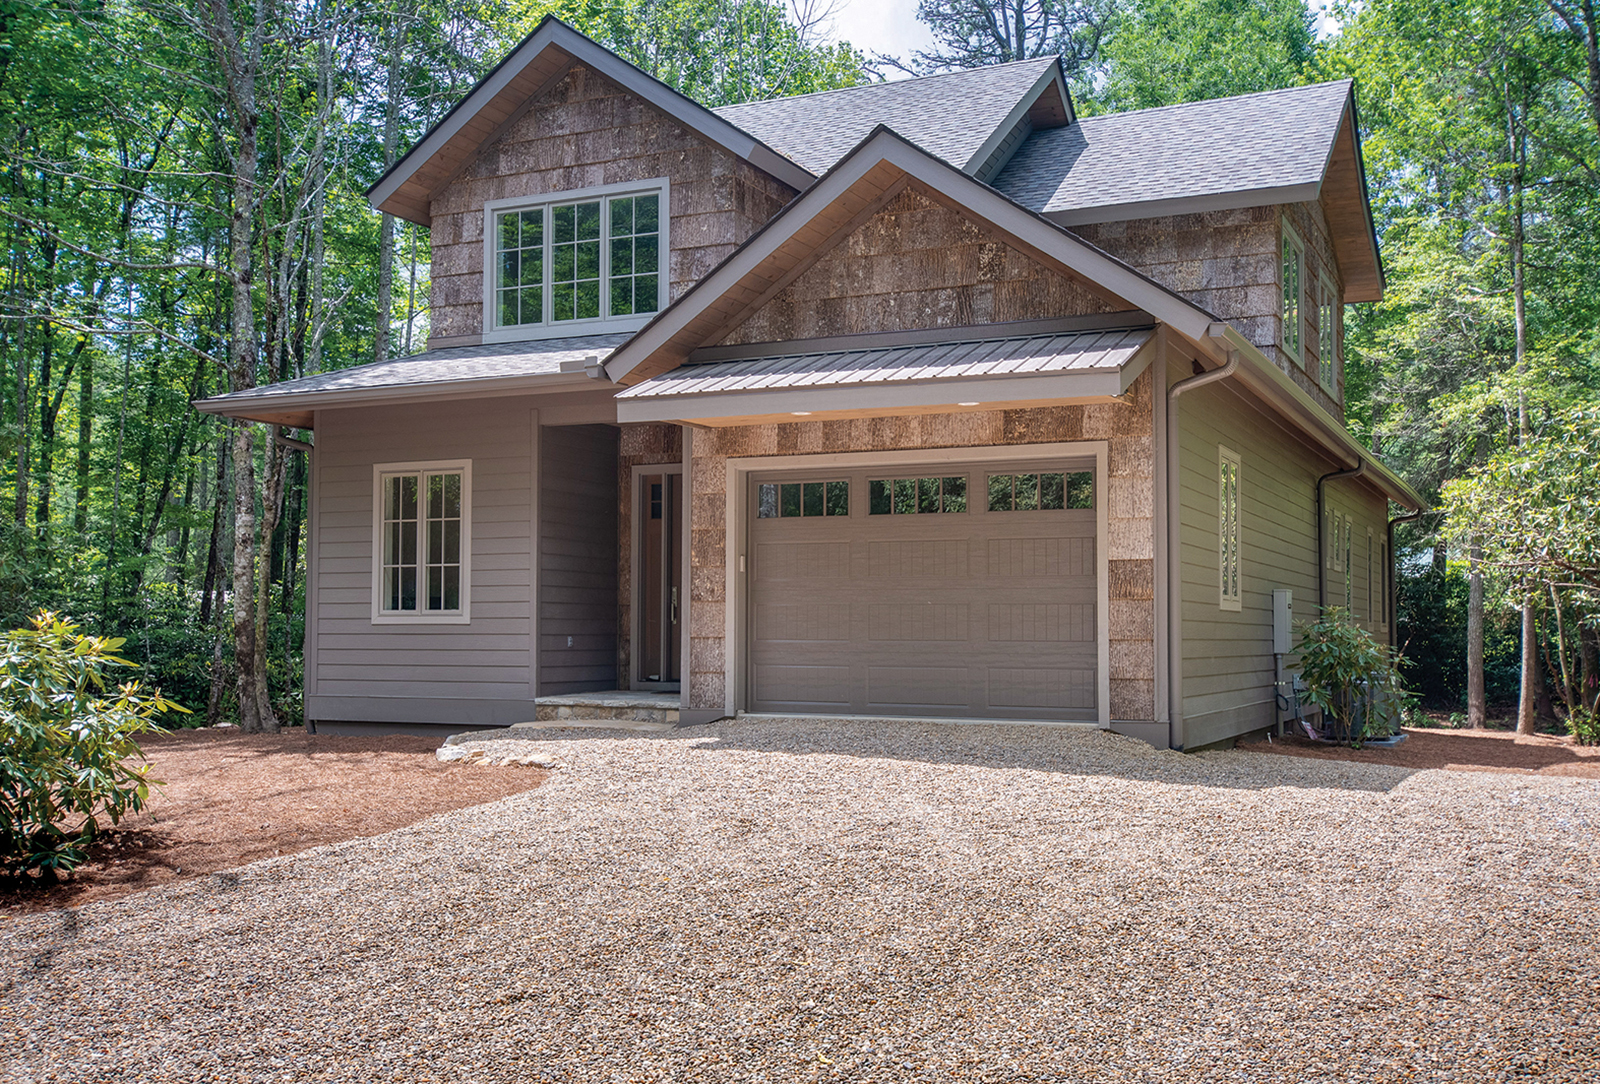 home-for-sale-country-club-properties-highlands-nc-carport